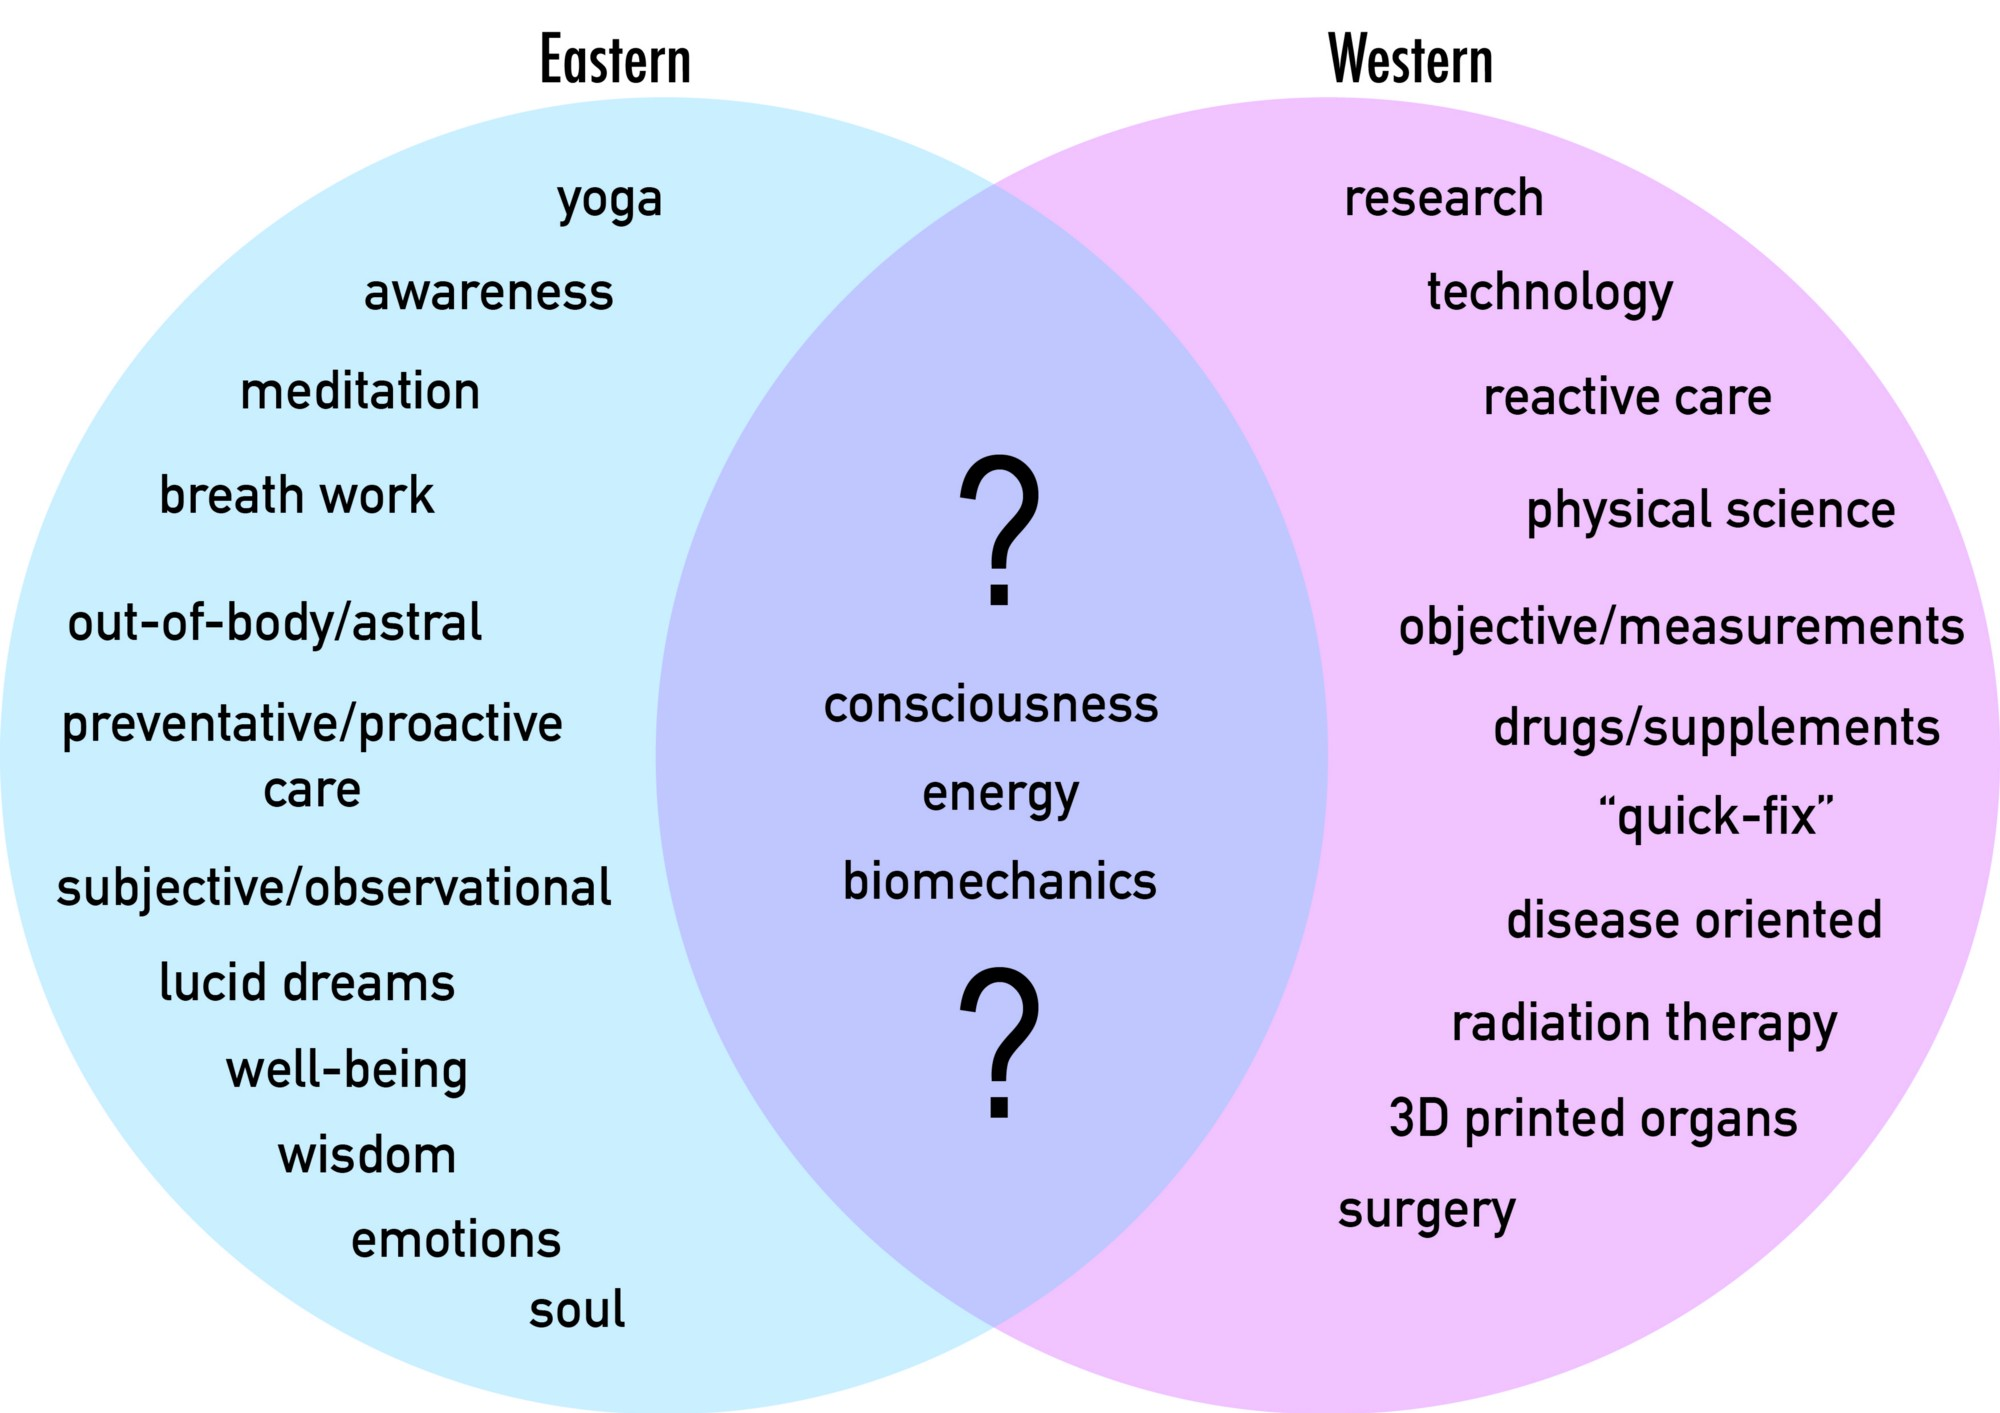 Integrated healthcare in modern society hacking health ottawa like a venn diagram of soul and science eastern and western non physical and physical its combinations resulting in things not even thought of today pooptronica Image collections